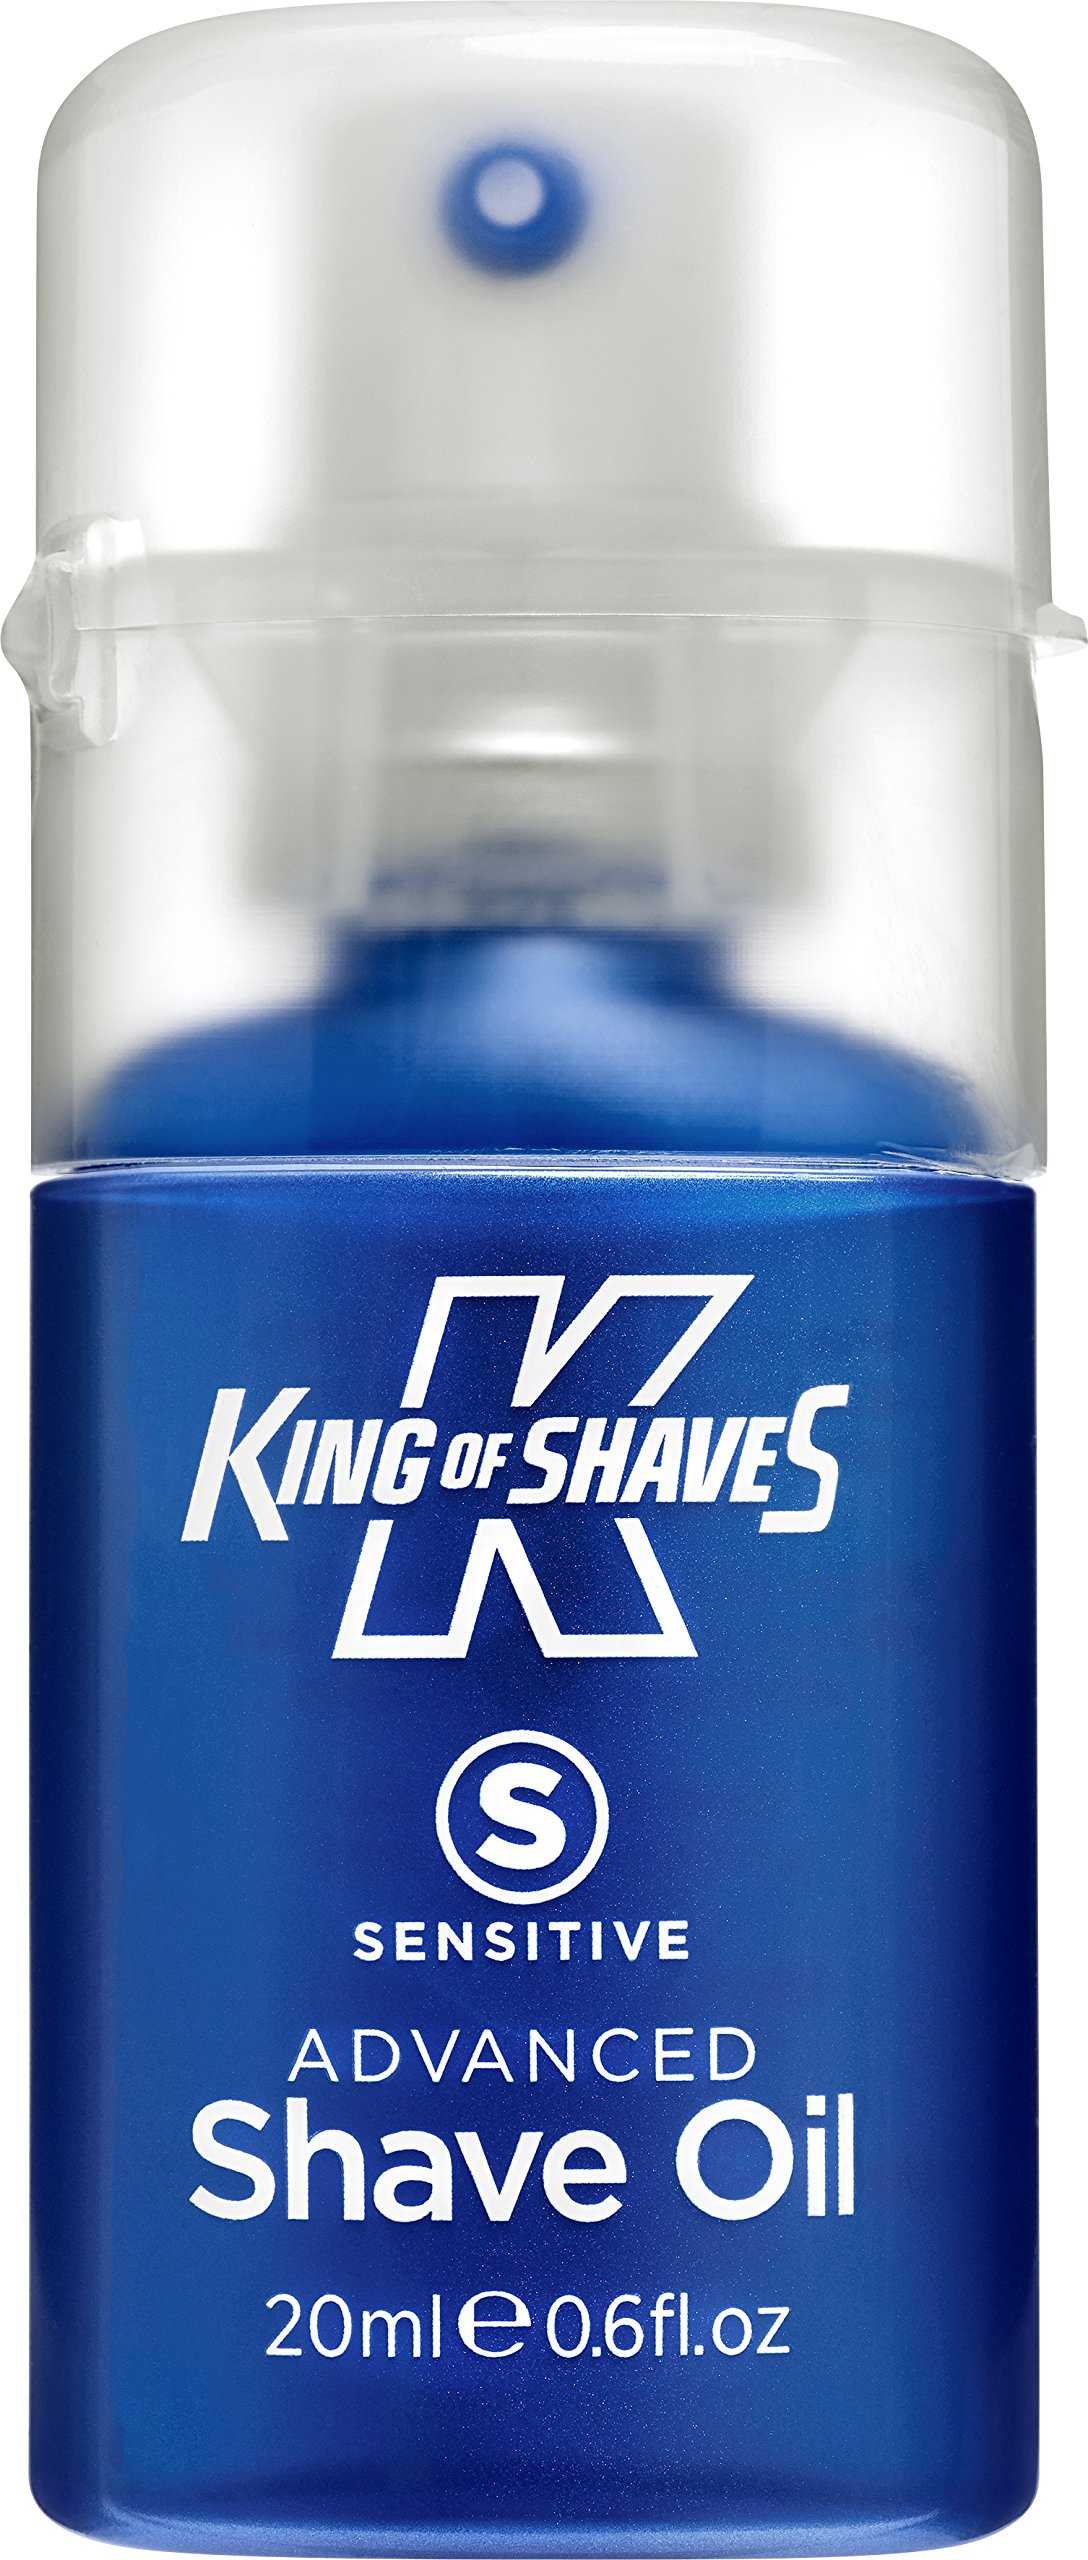 King of Shaves King of Shaves AlphaOil Shave Oil, 0.5 oz Peter Thomas Roth Hungarian Thermal Water Mineral-Rich Atomic Heat Mask